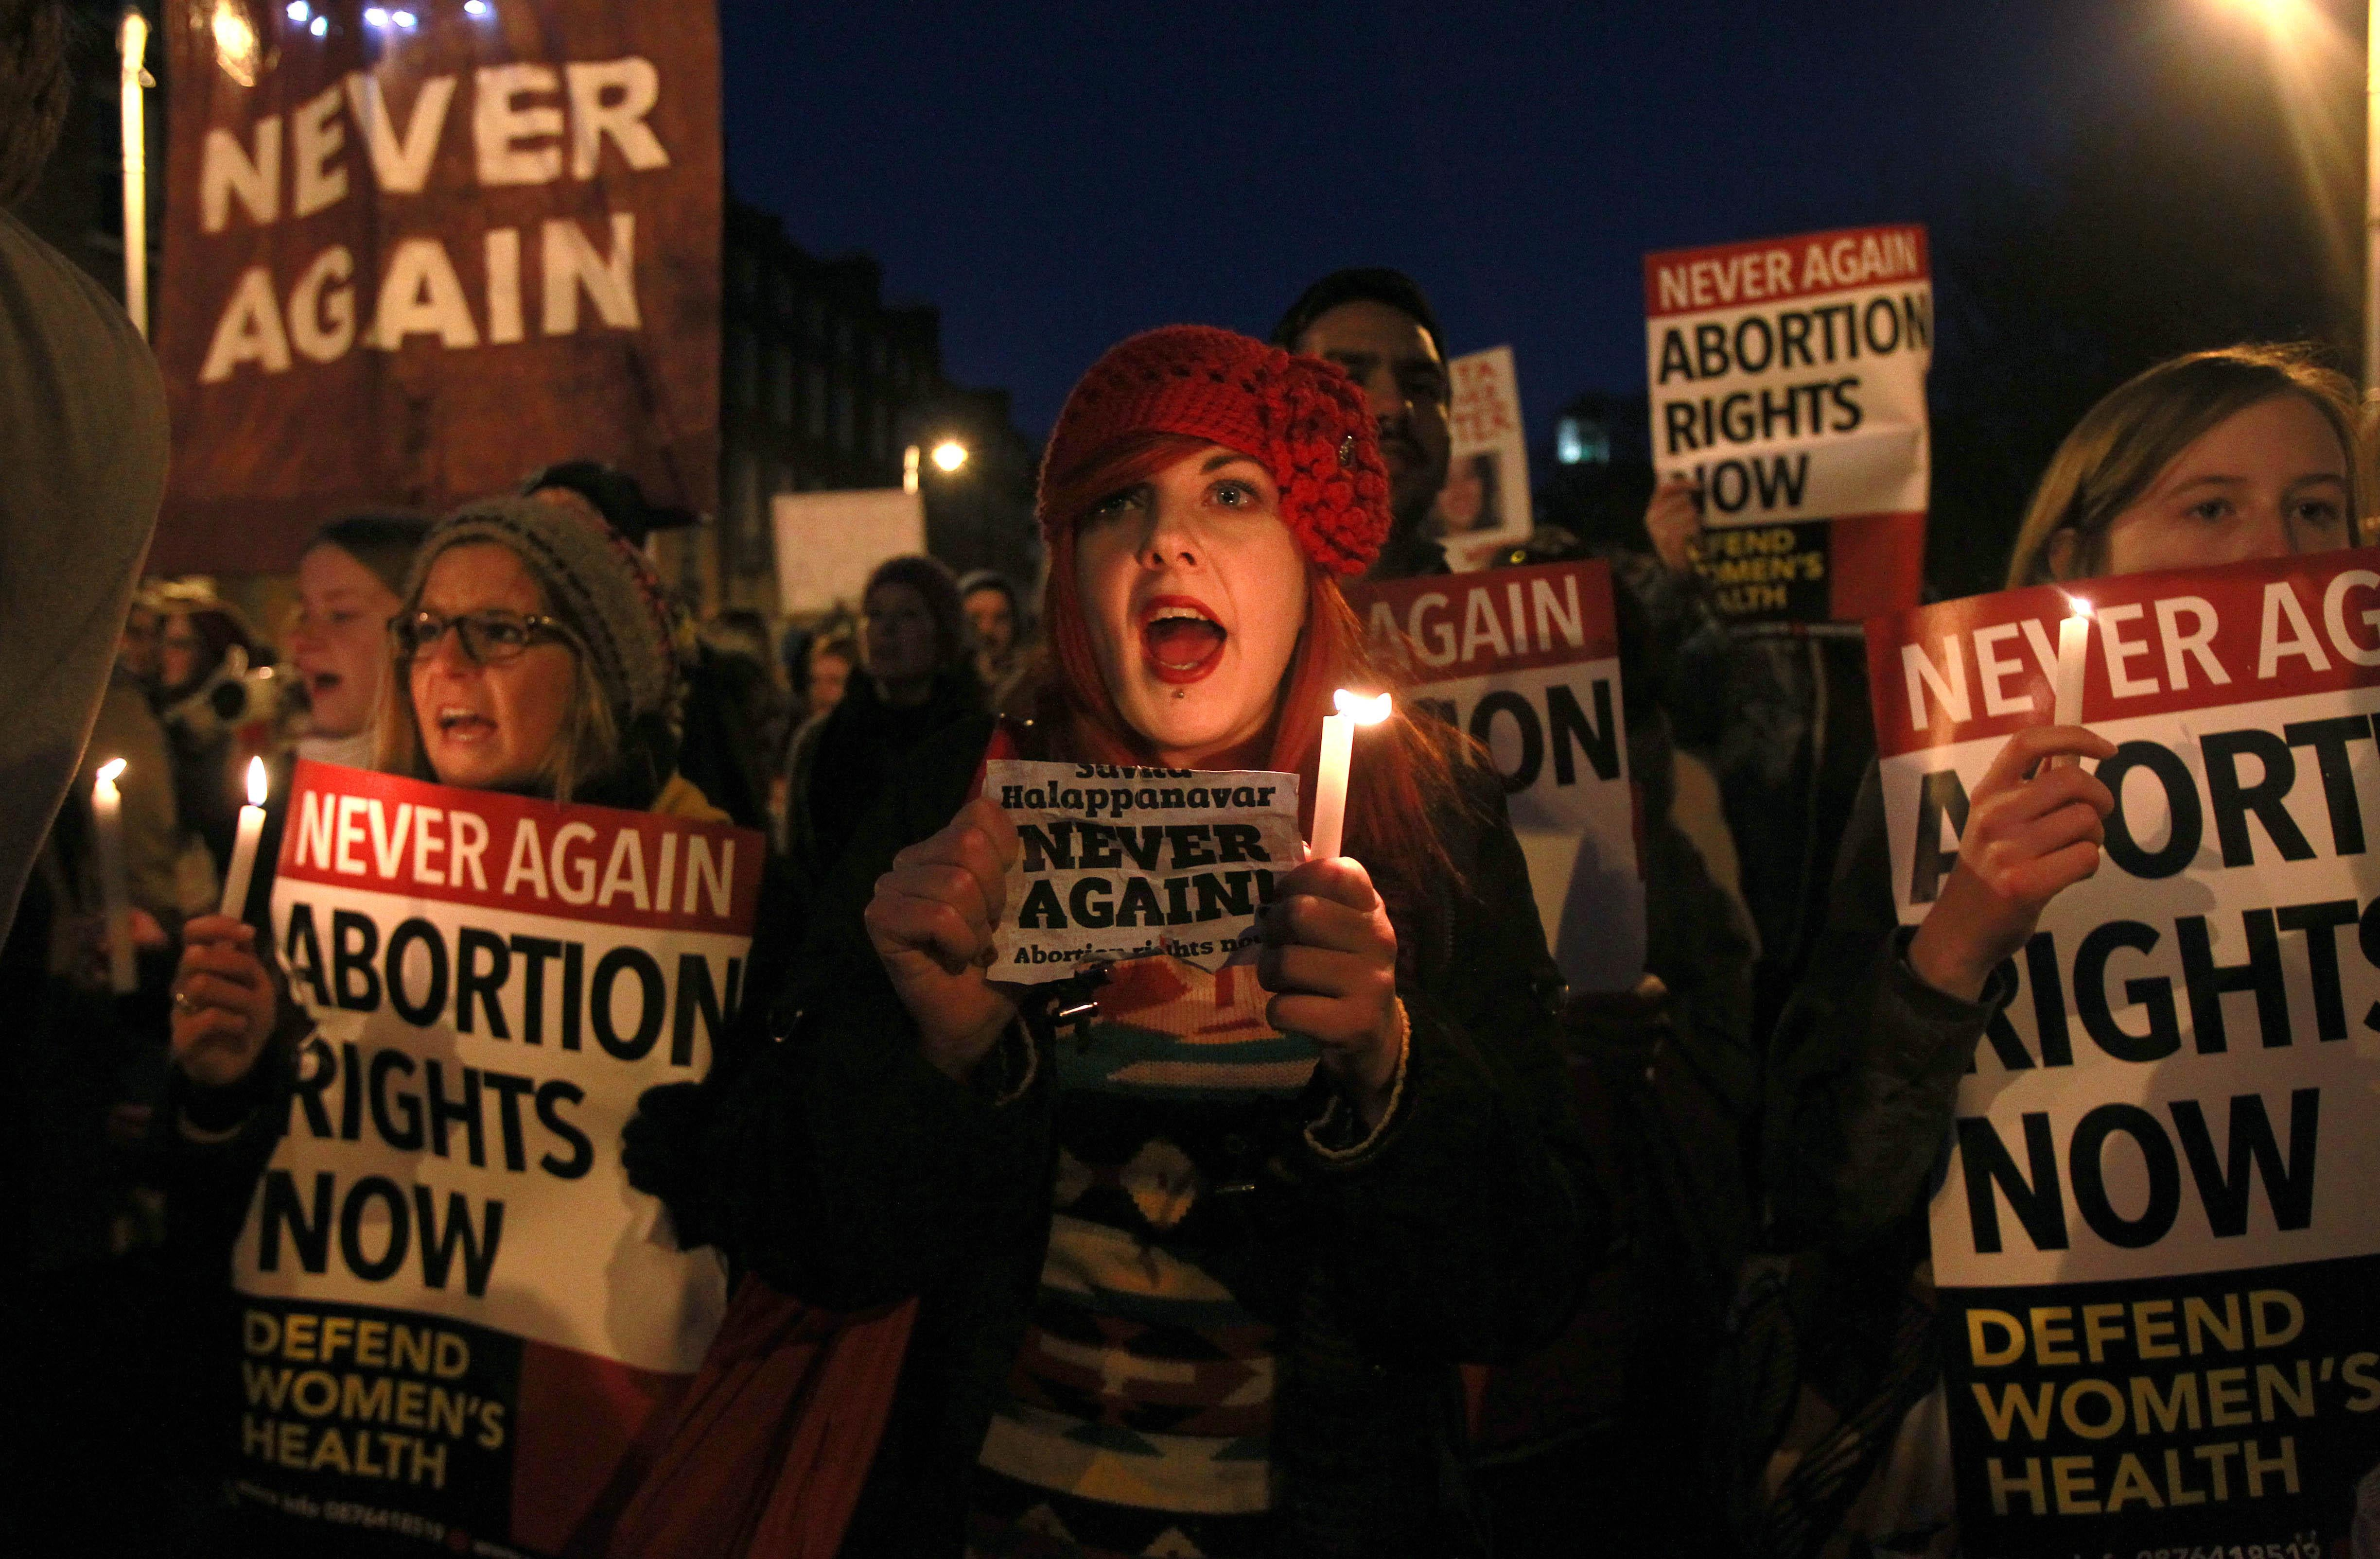 Immigrant Woman in Ireland Denied an Abortion, Forced Into a C-Section